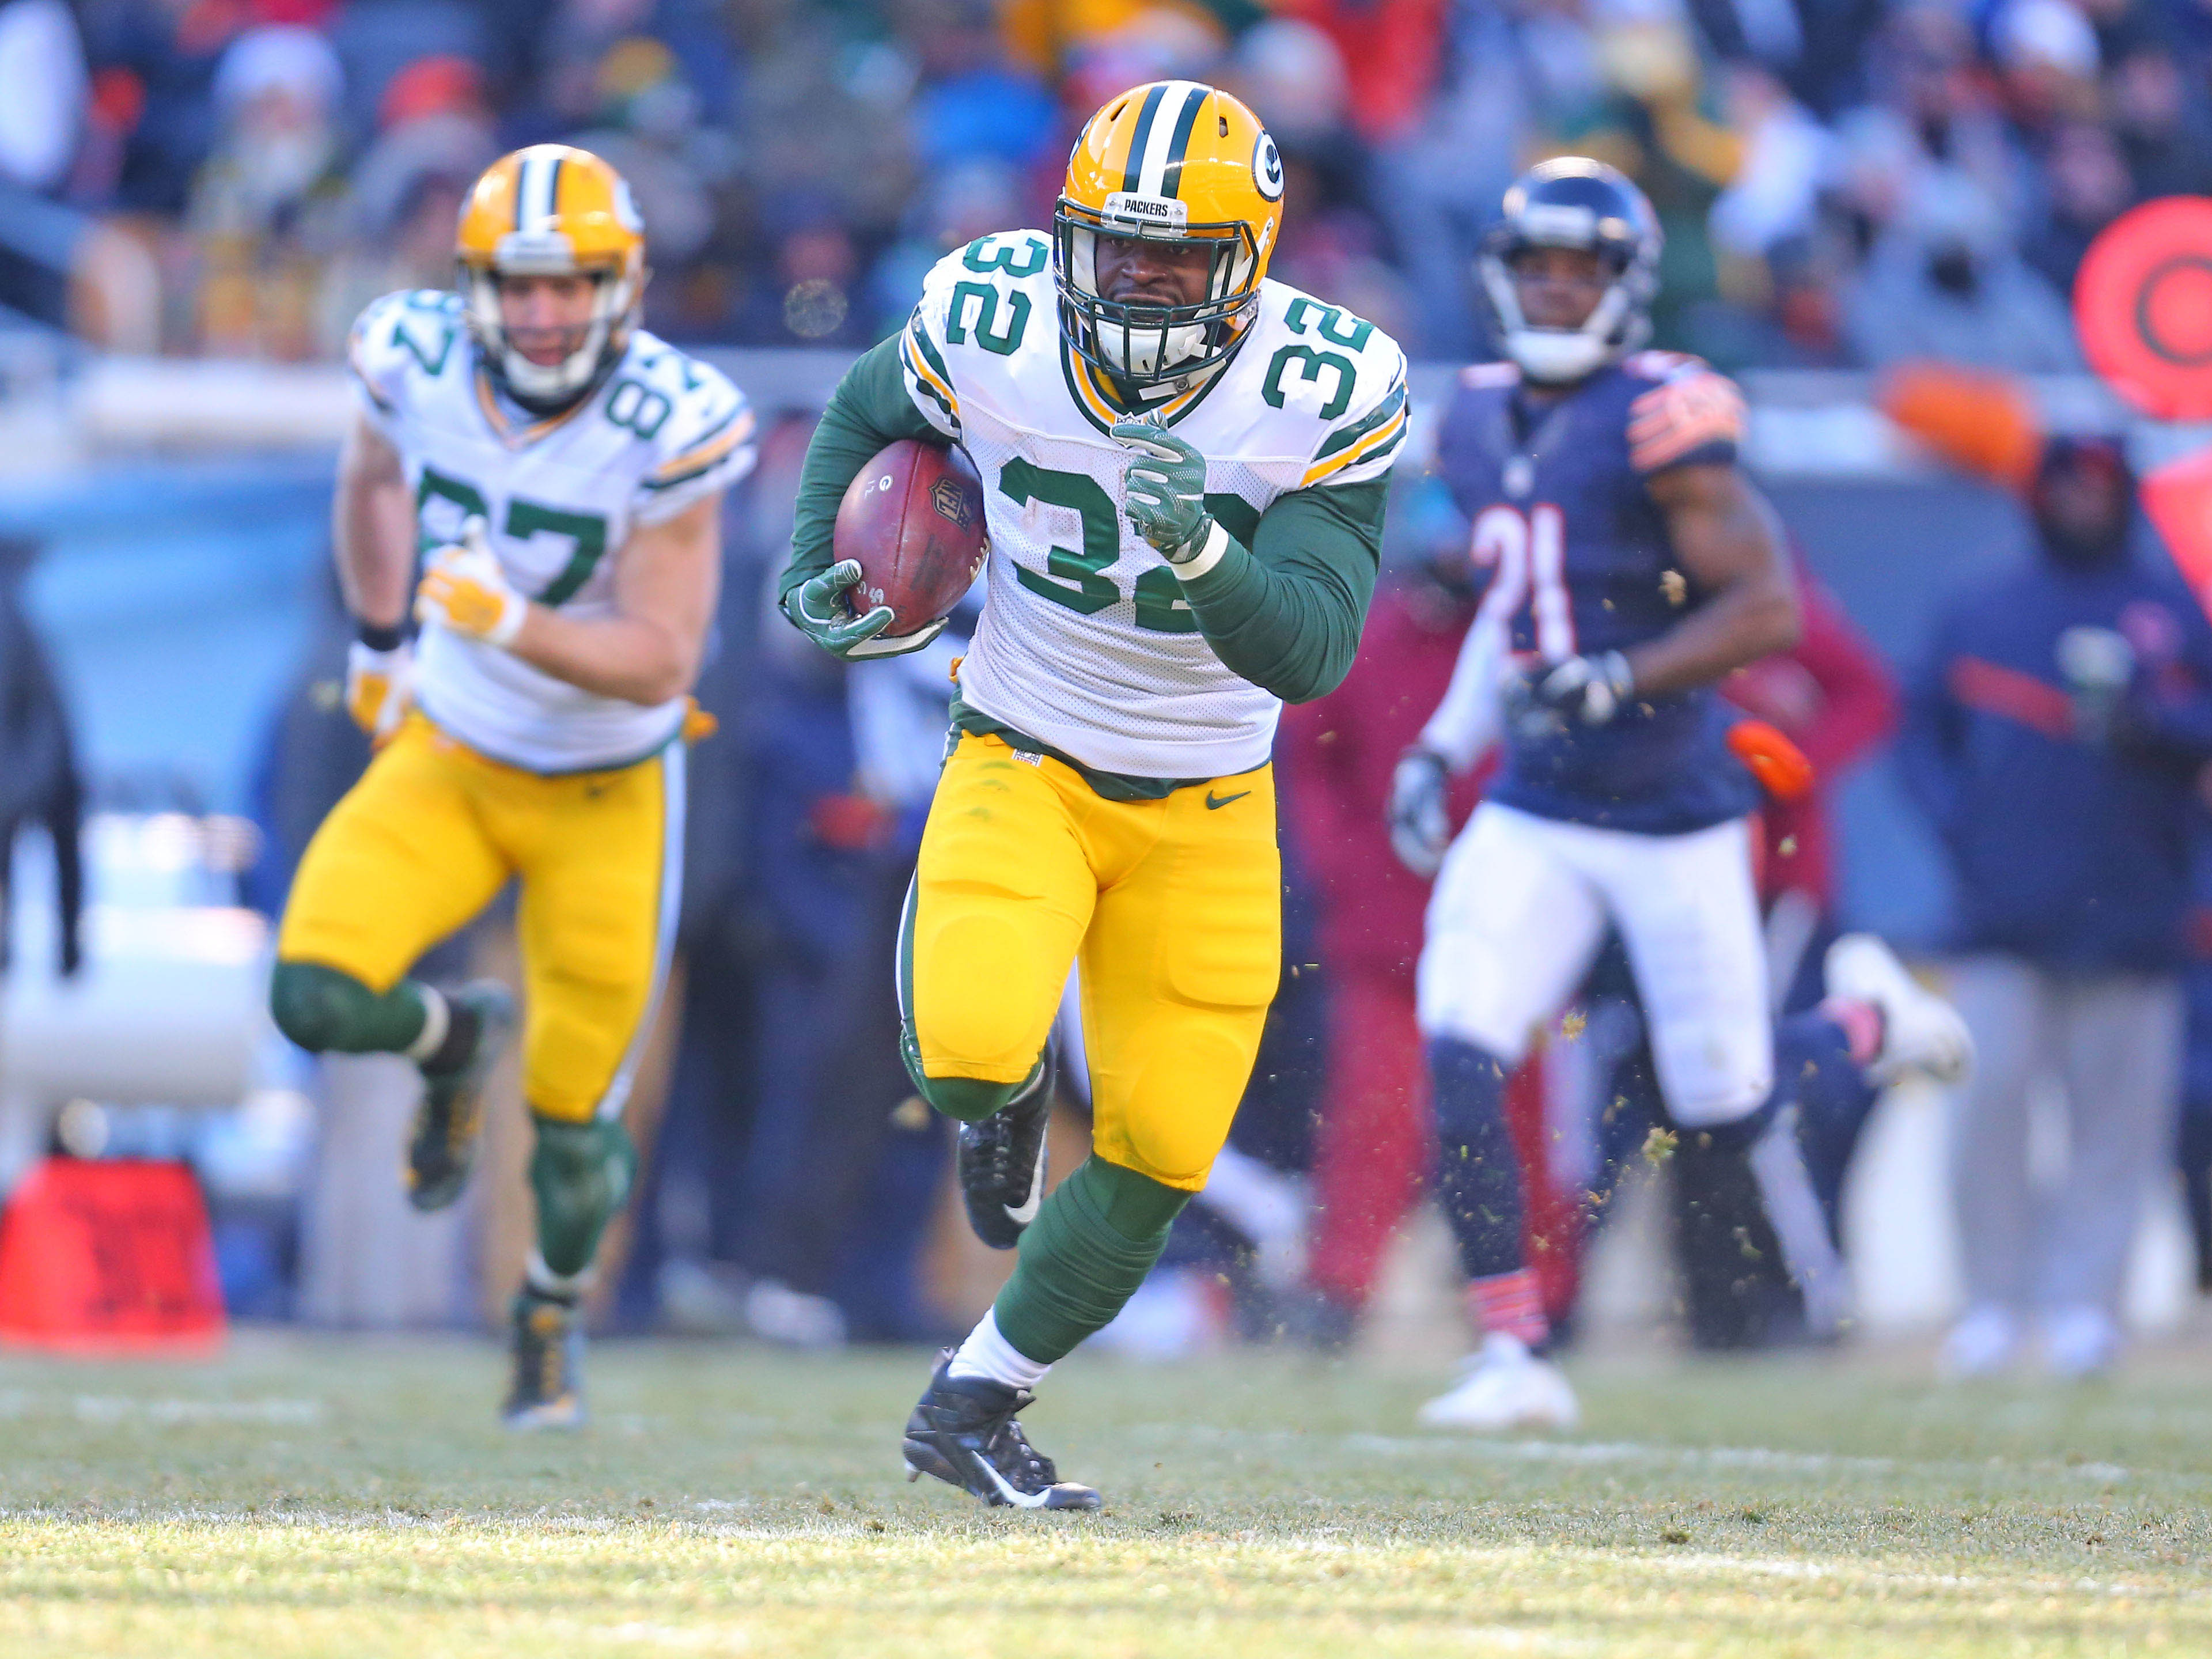 9754797-nfl-green-bay-packers-at-chicago-bears